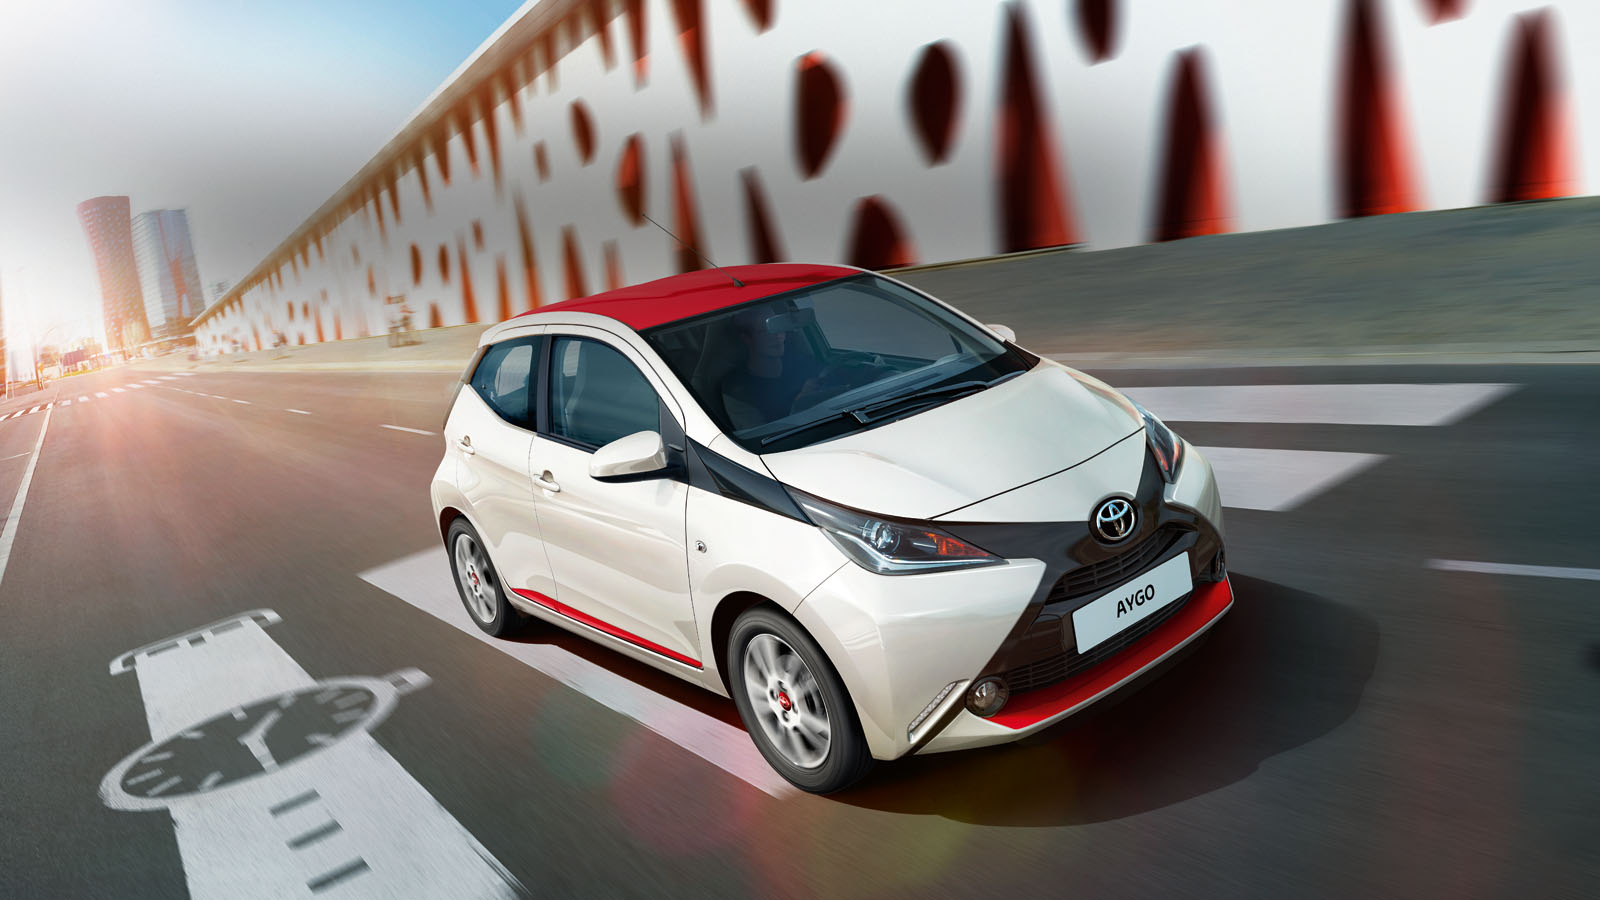 toyota yaris 2017 trd parts new agya 1.2 g mt service and accessories merchandise